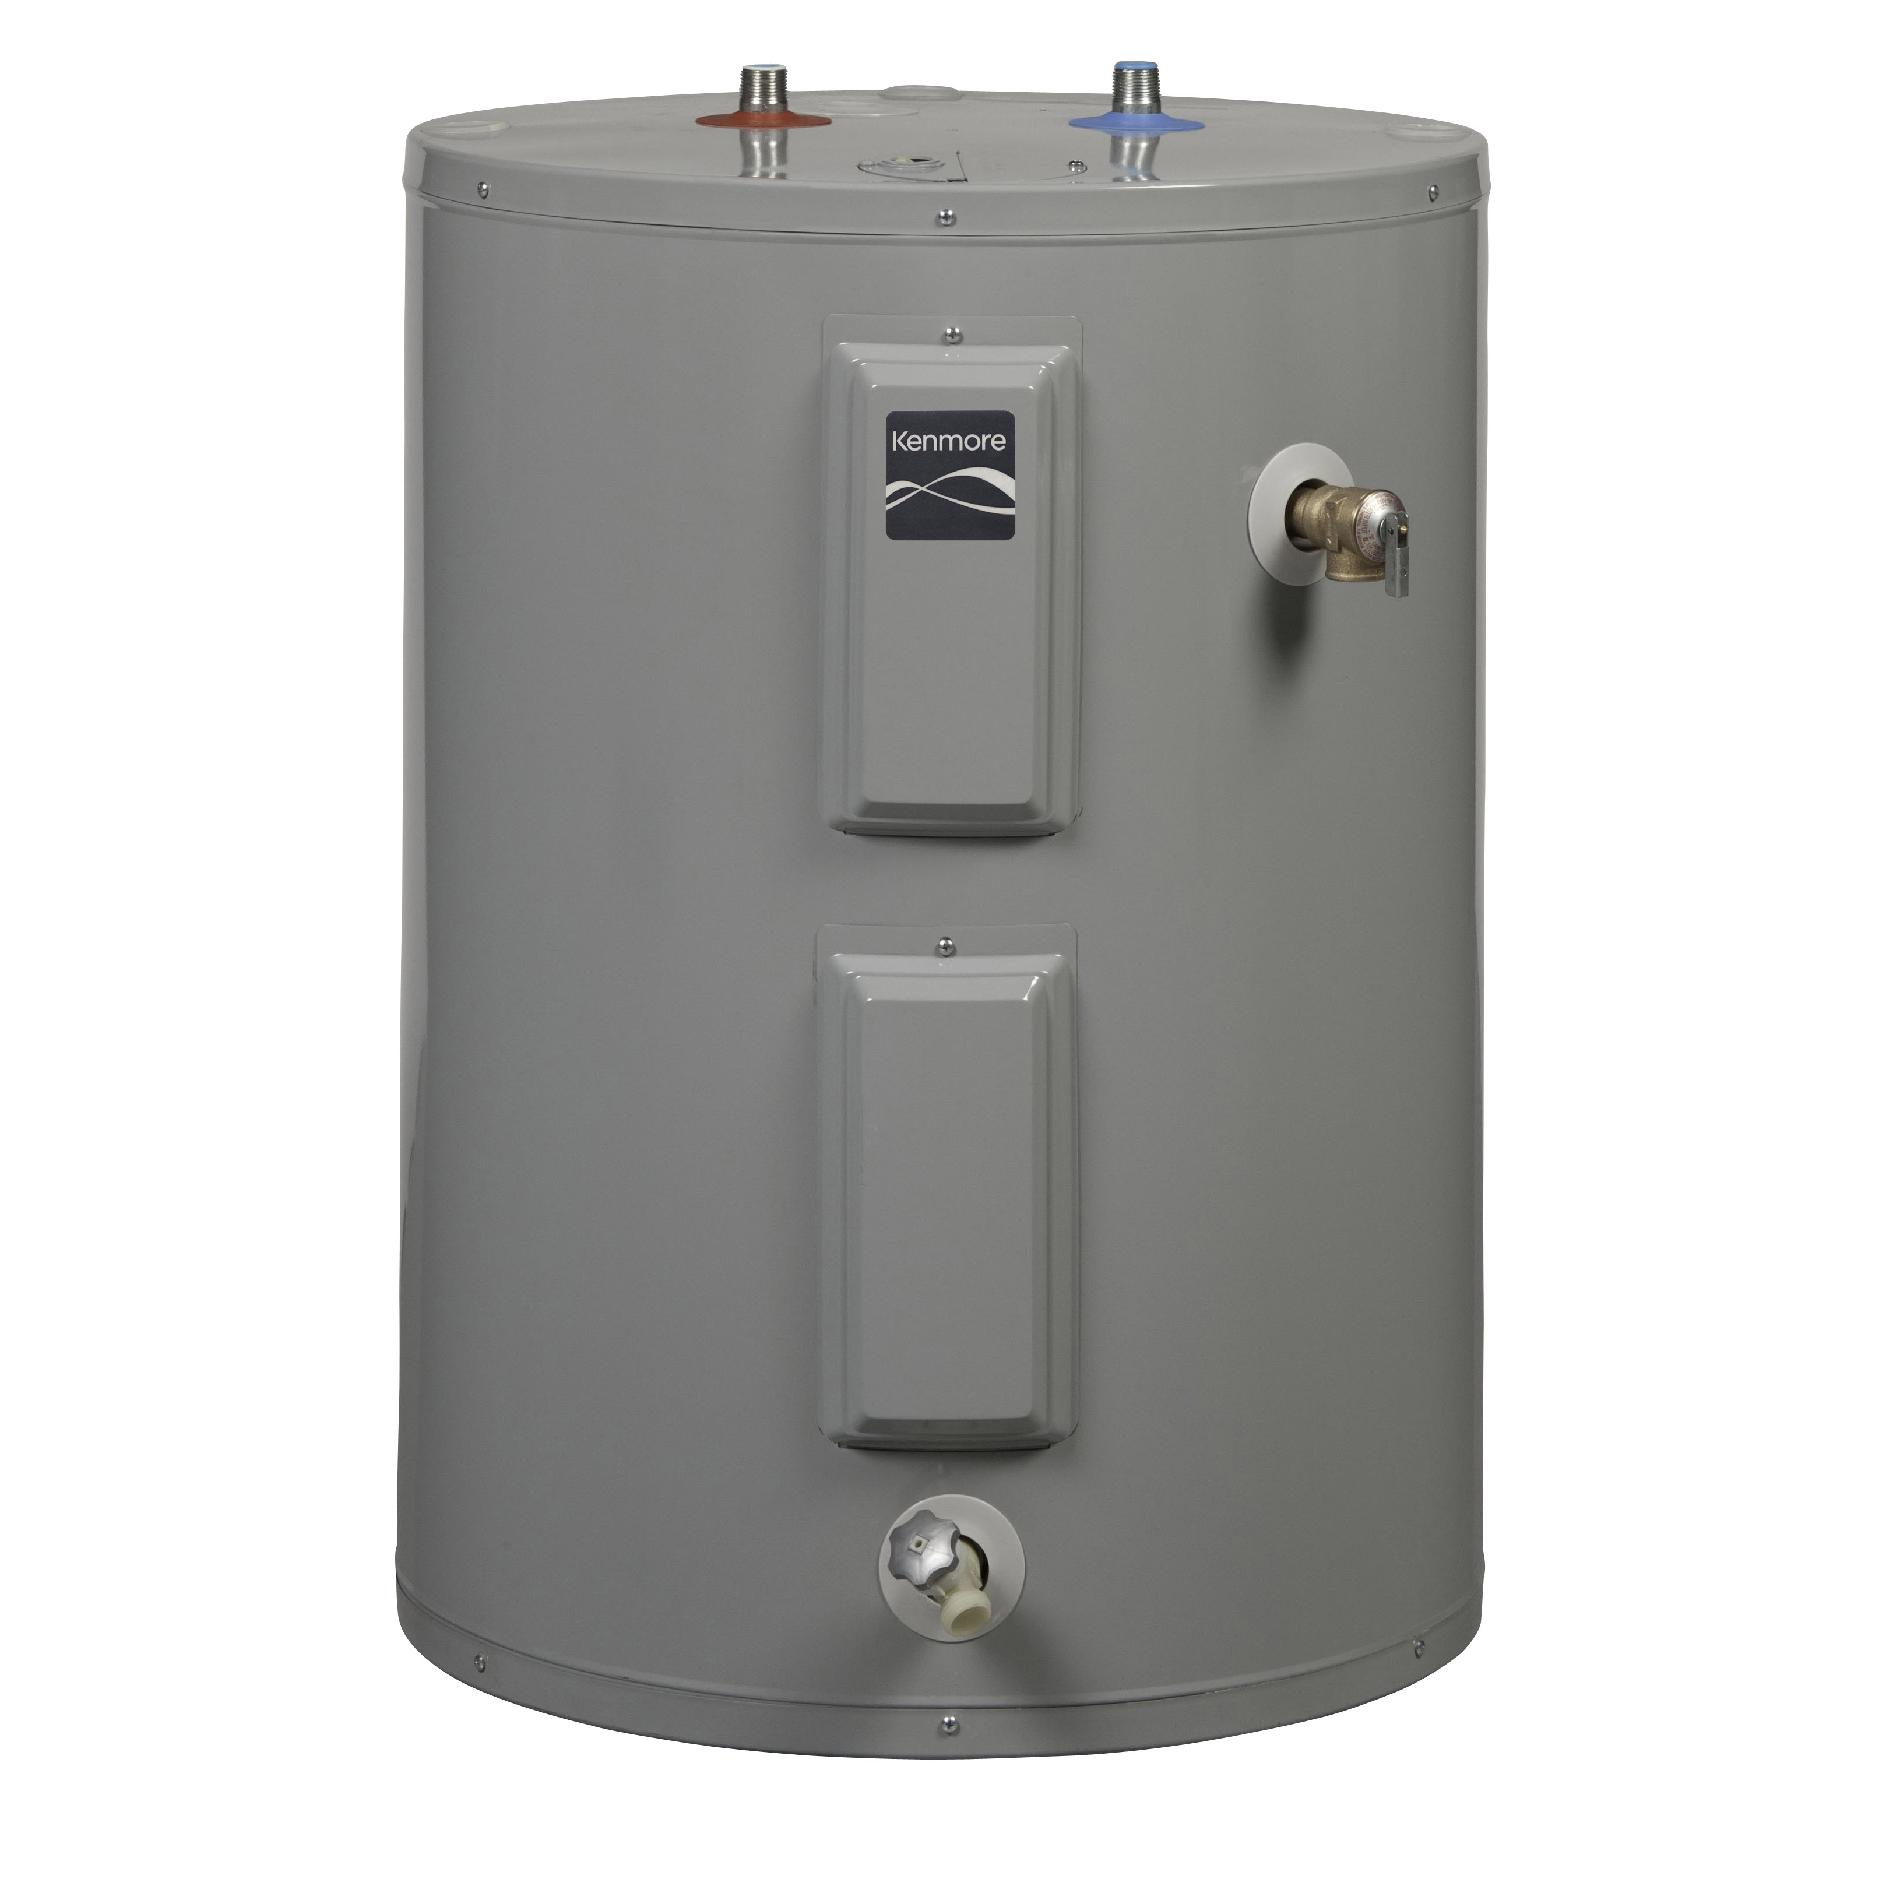 Kenmore 30 gal. Short 6-Year Electric Water Heater - Limited Availability